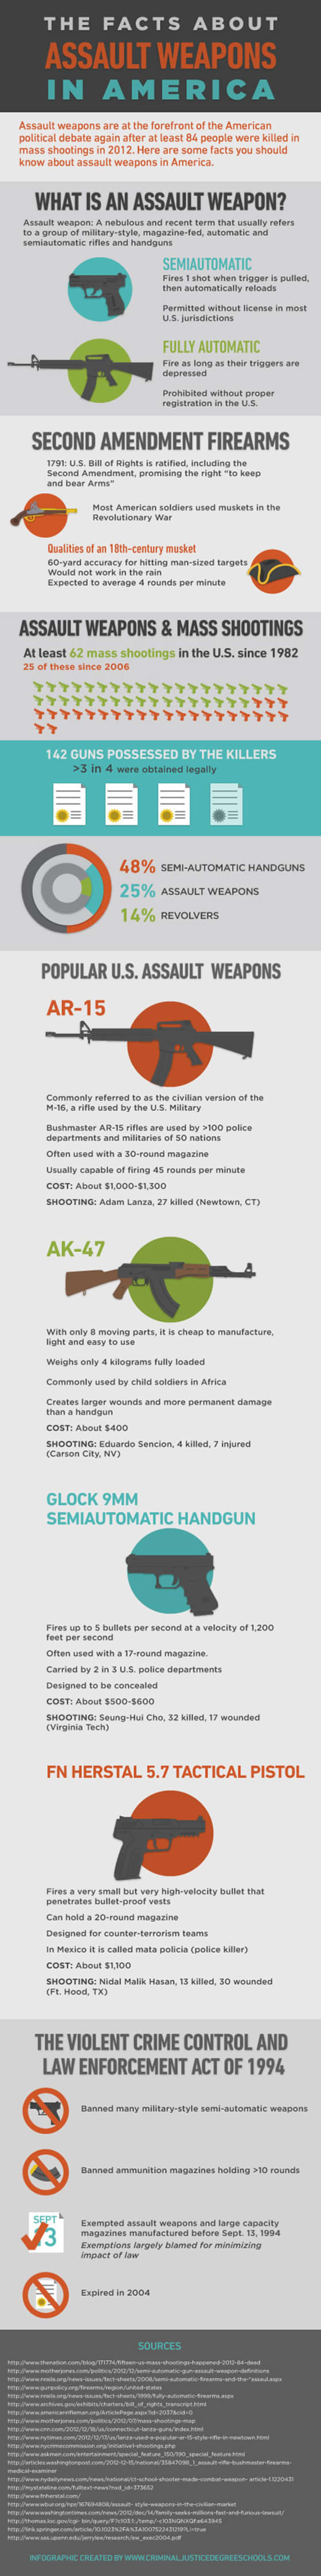 assault weapons in America